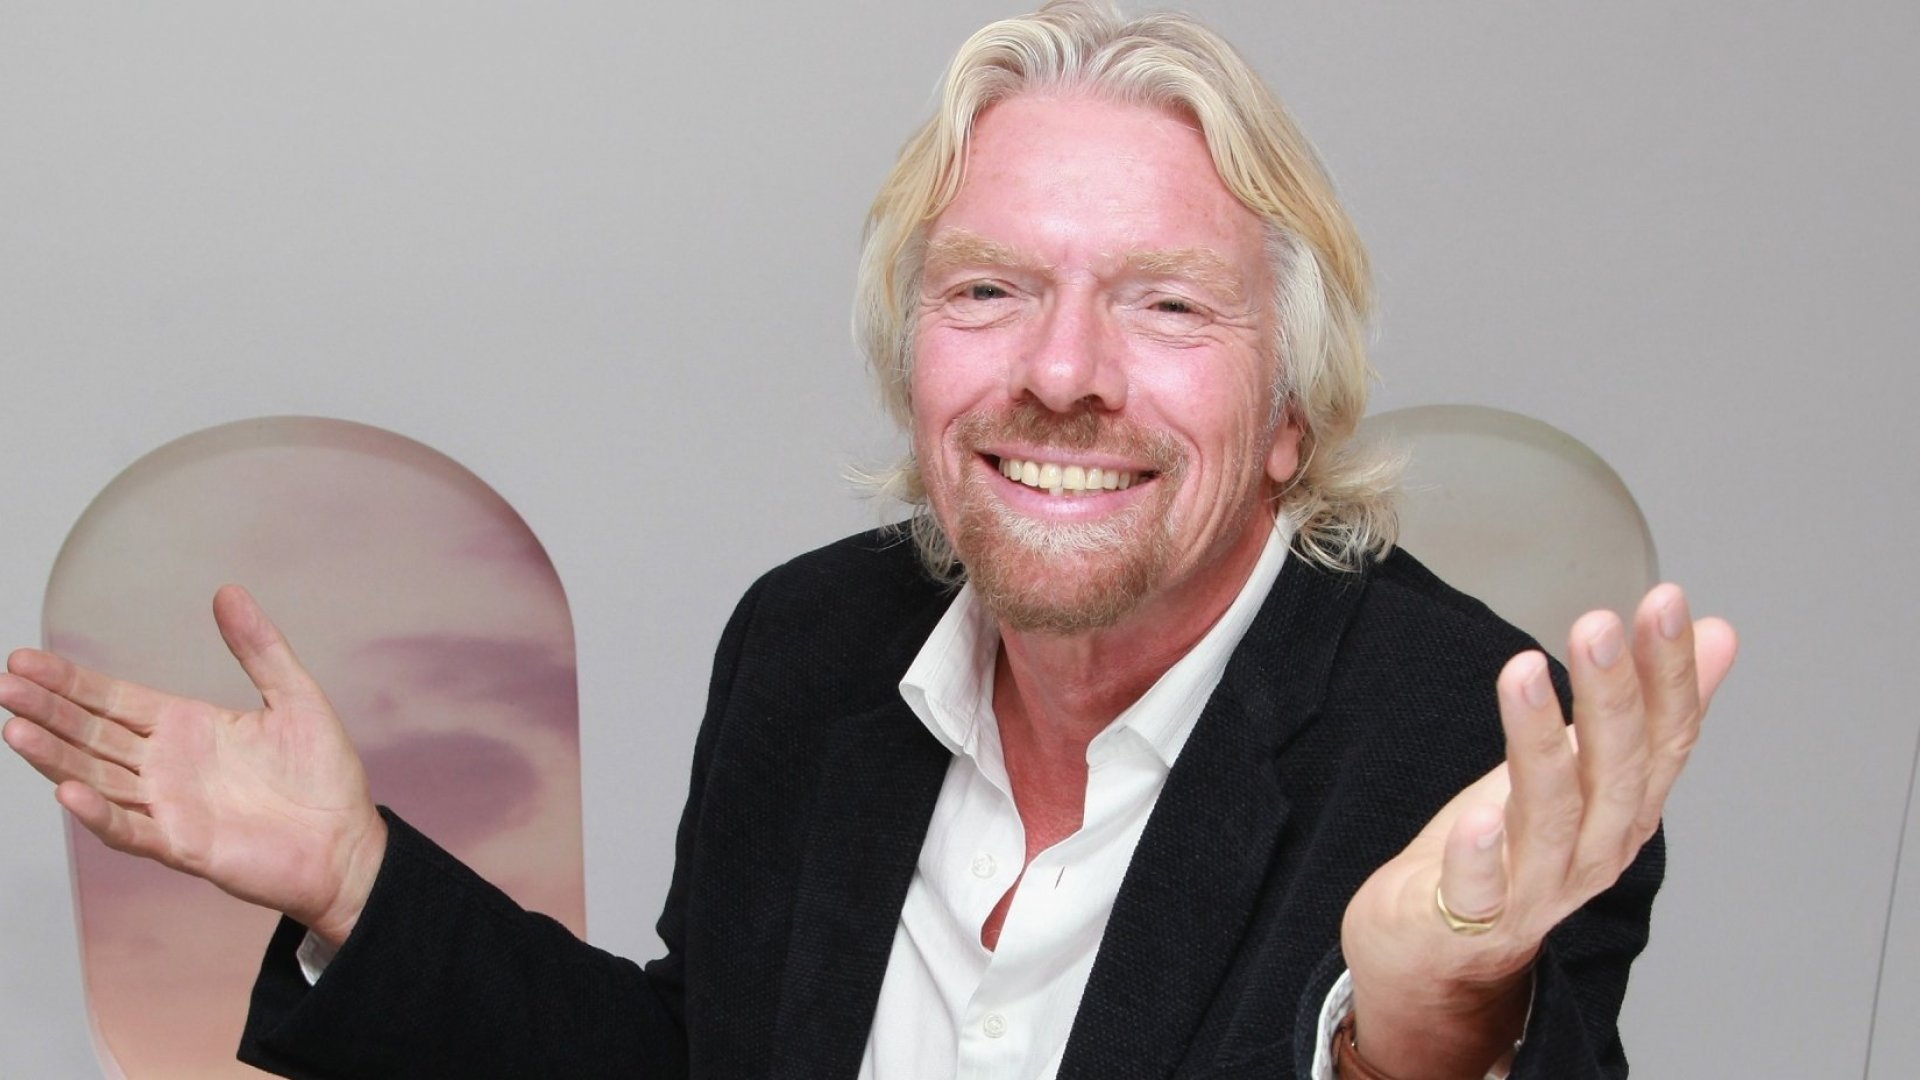 In Just 11 Words, Billionaire Richard Branson Gives His Best Career Advice (It Came From His Mom)